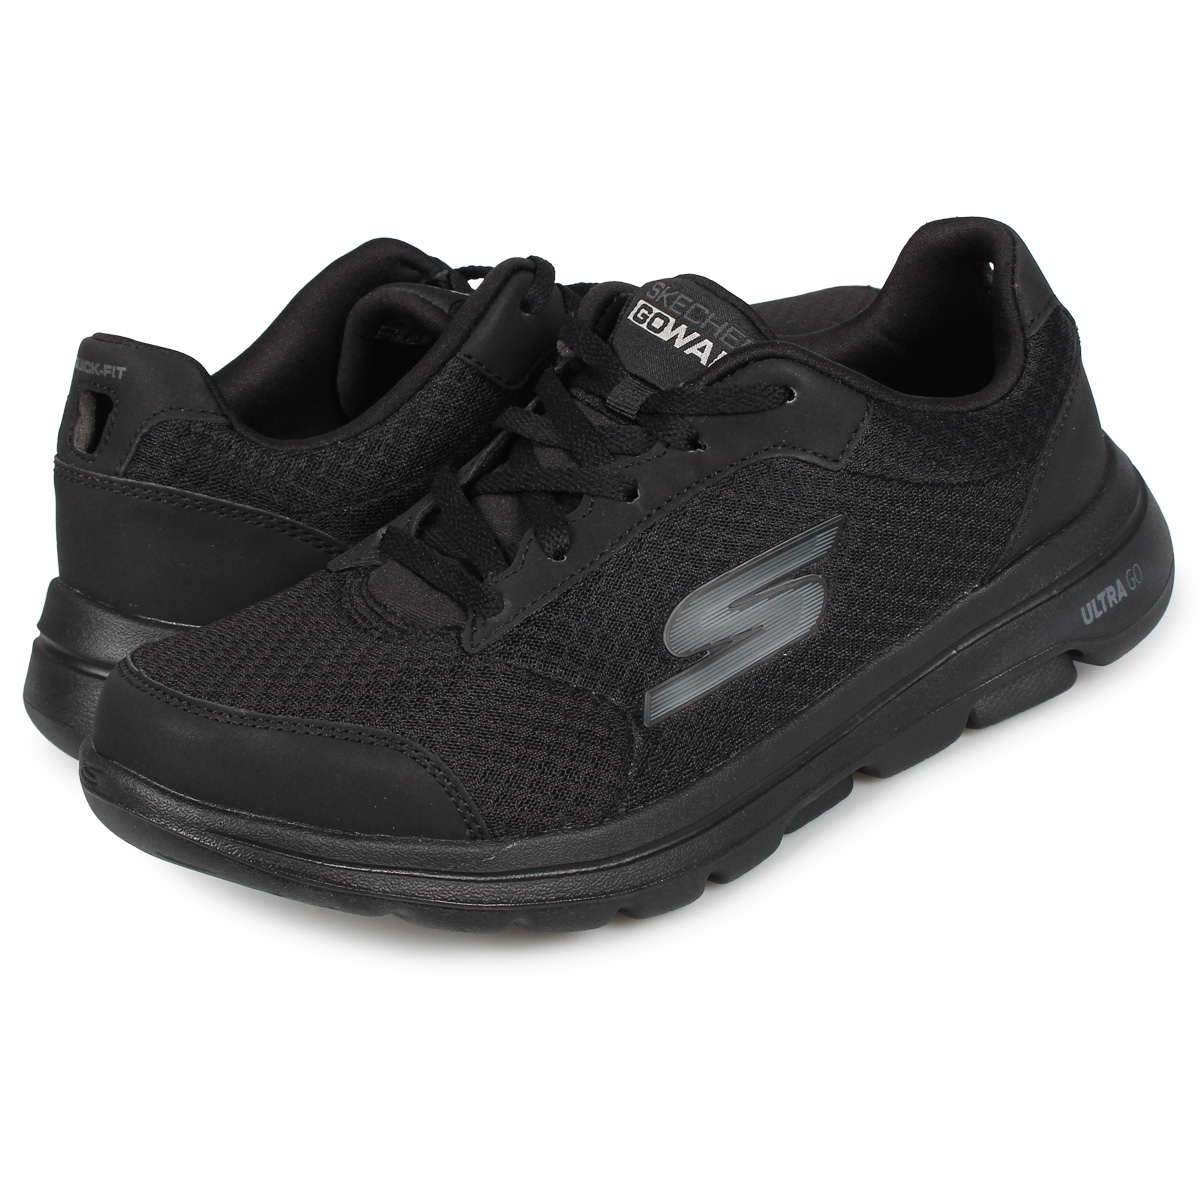 skechers go walk shoes